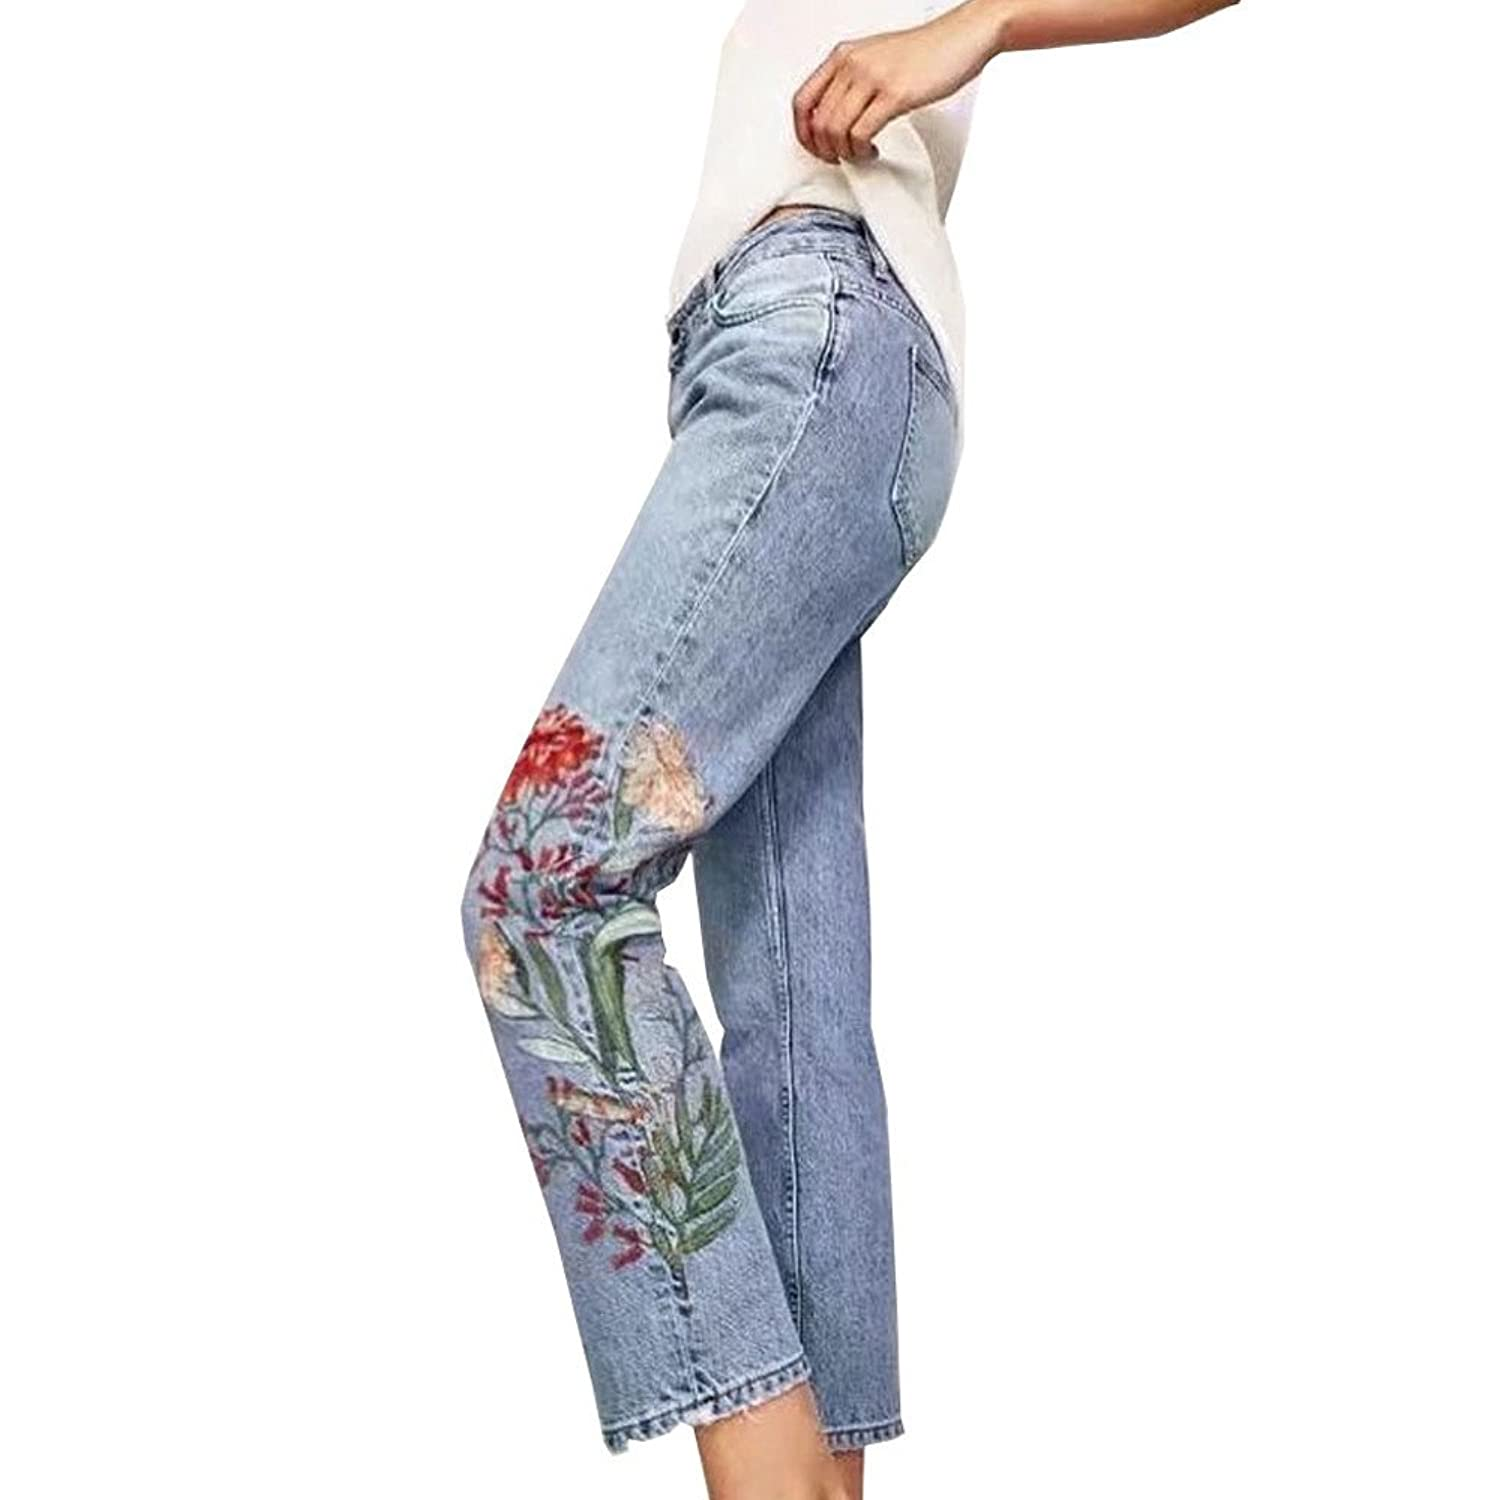 04c17f39cda  flower  Denim Women s High Waist Floral Embroidered Straight-Leg  Girlfriend Jeans Cropped Pants